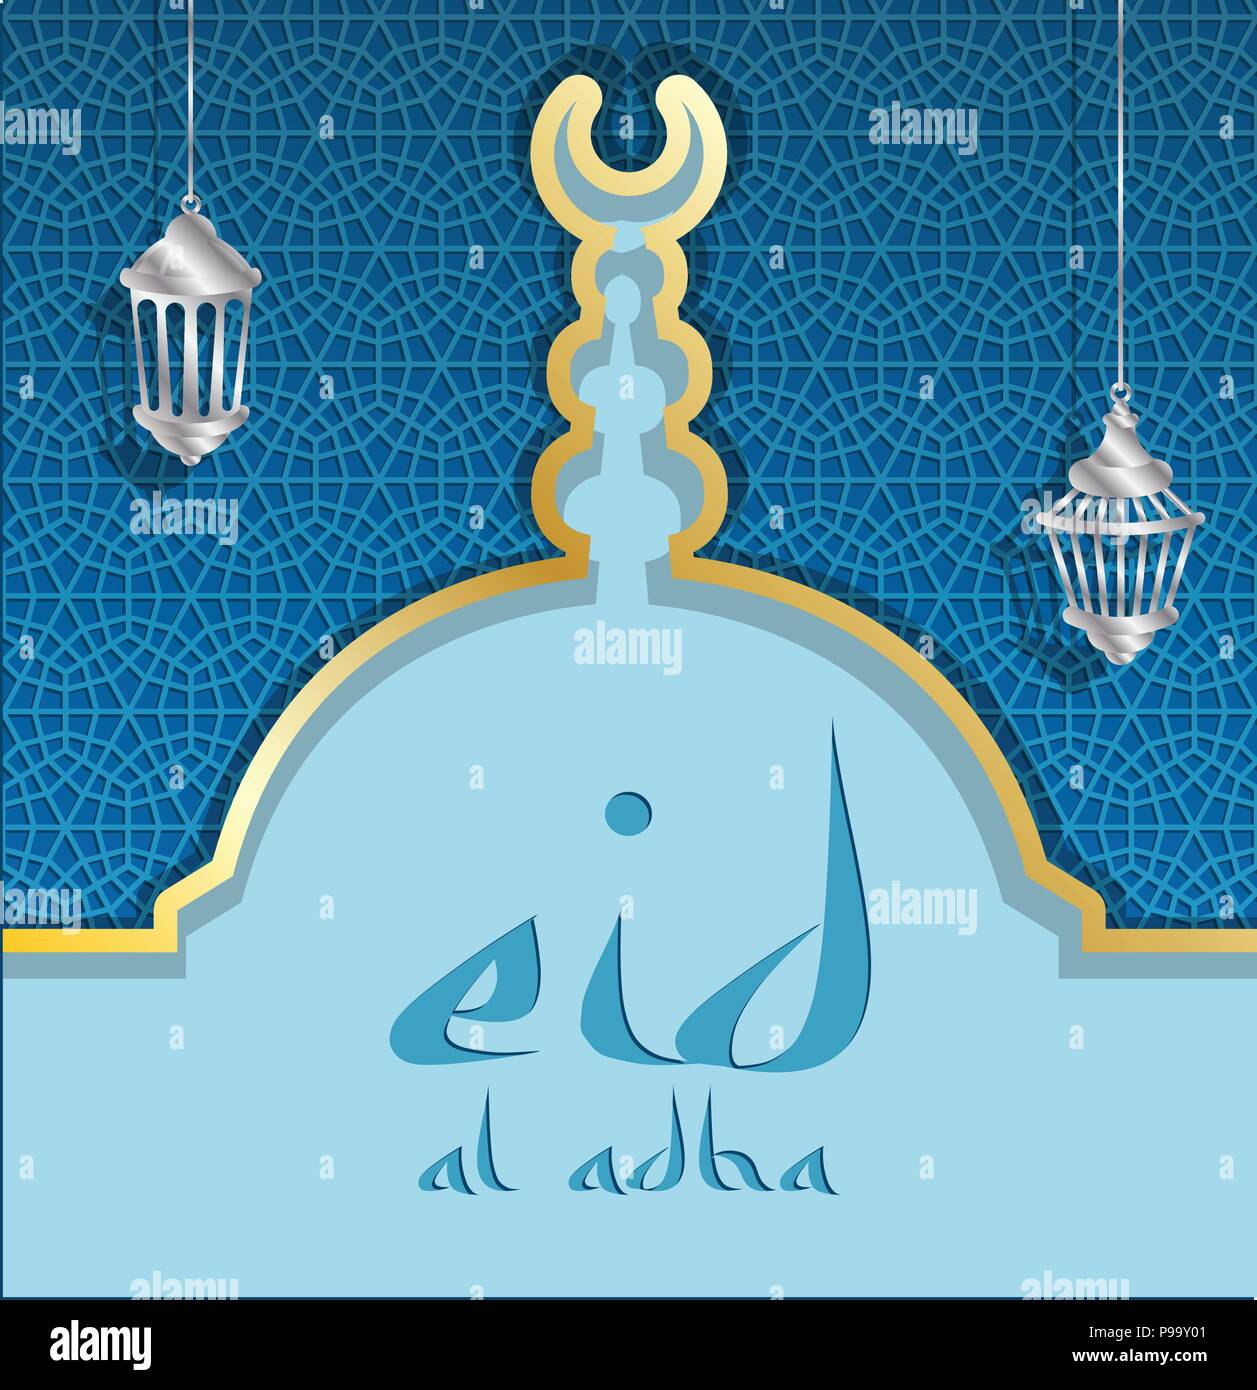 Eid Al Adha Greeting Card With A Blue Mosque Dome And Lanterns All